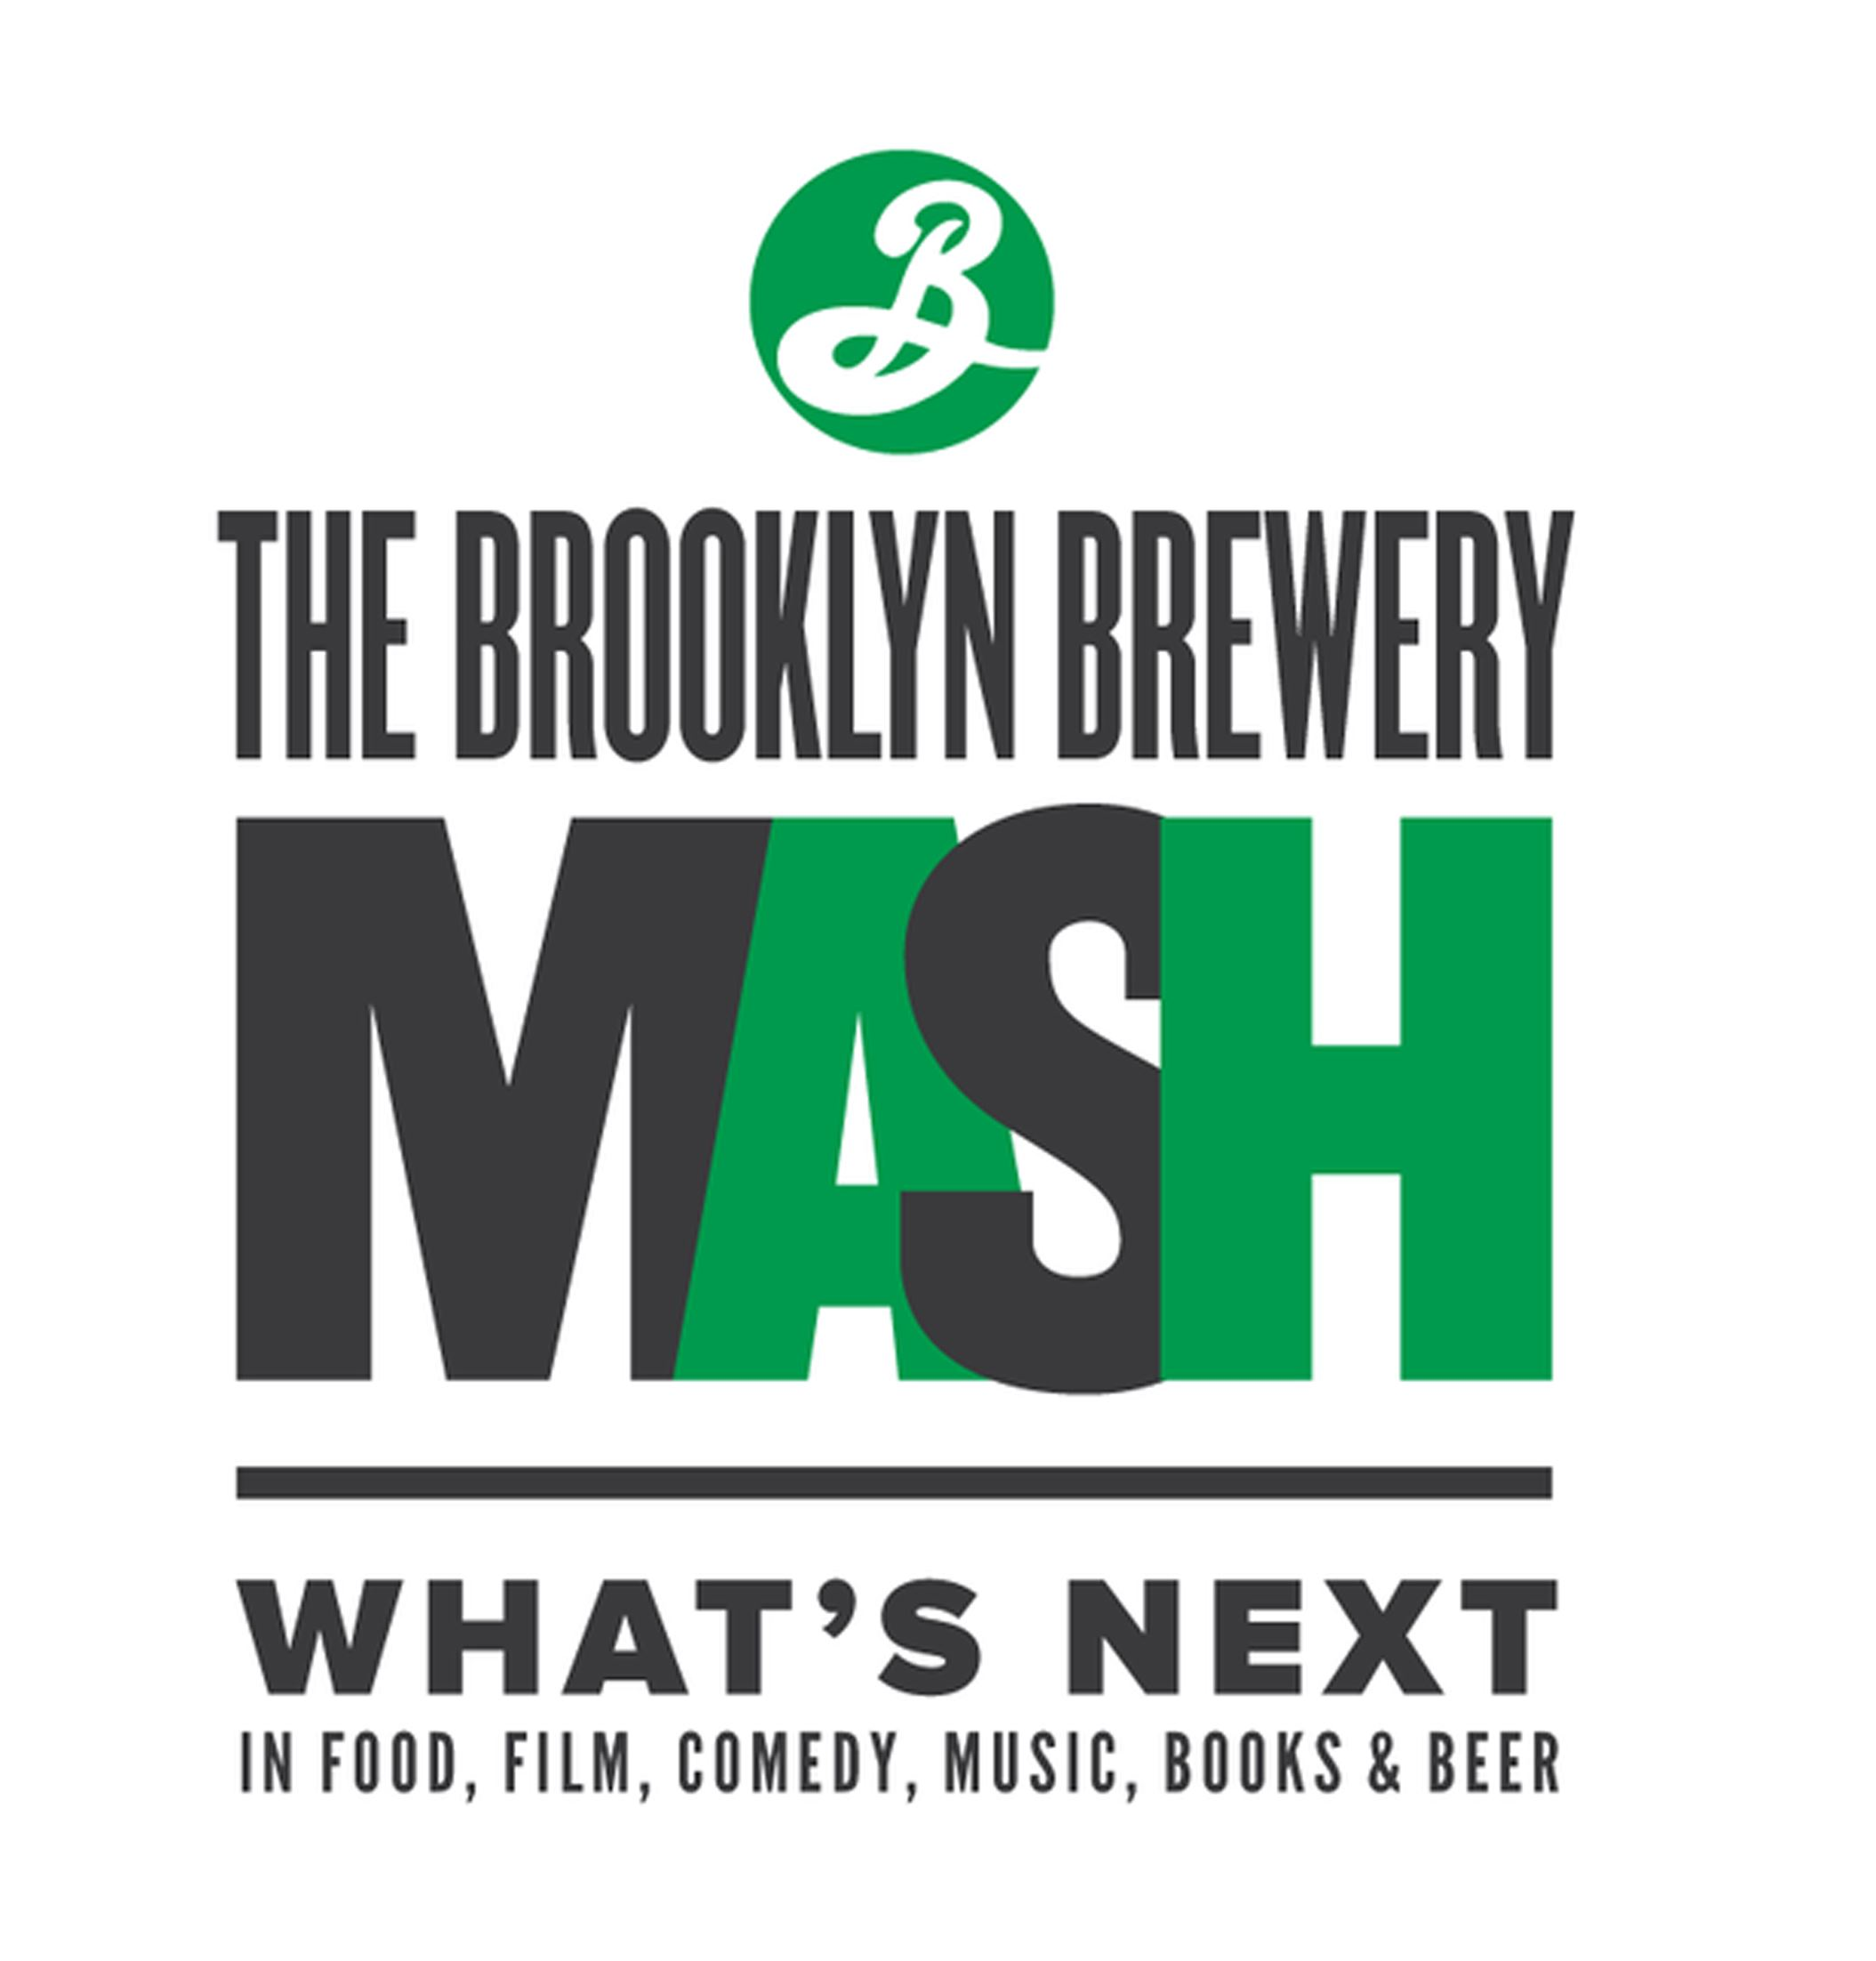 20140617hobrooklynlogofood-1 This is the logo of the Brooklyn Brewrey Mash tour that hits Pittsburgh June 21-28.